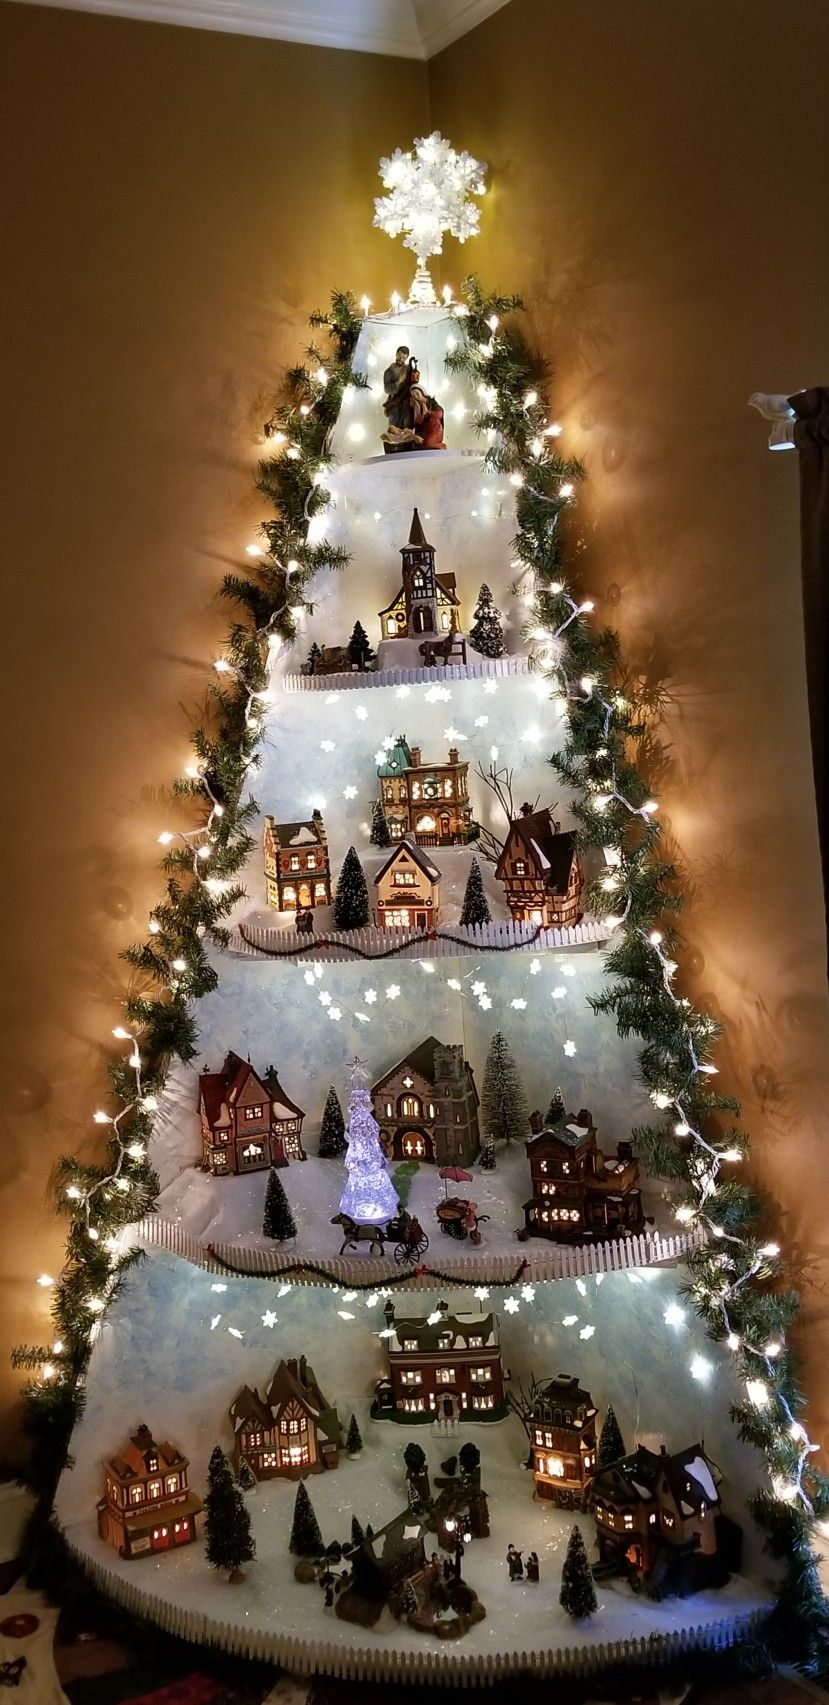 Christmas Village Display Tree Diy Christmas Village Christmas Tree Village Display Christmas Tree Art